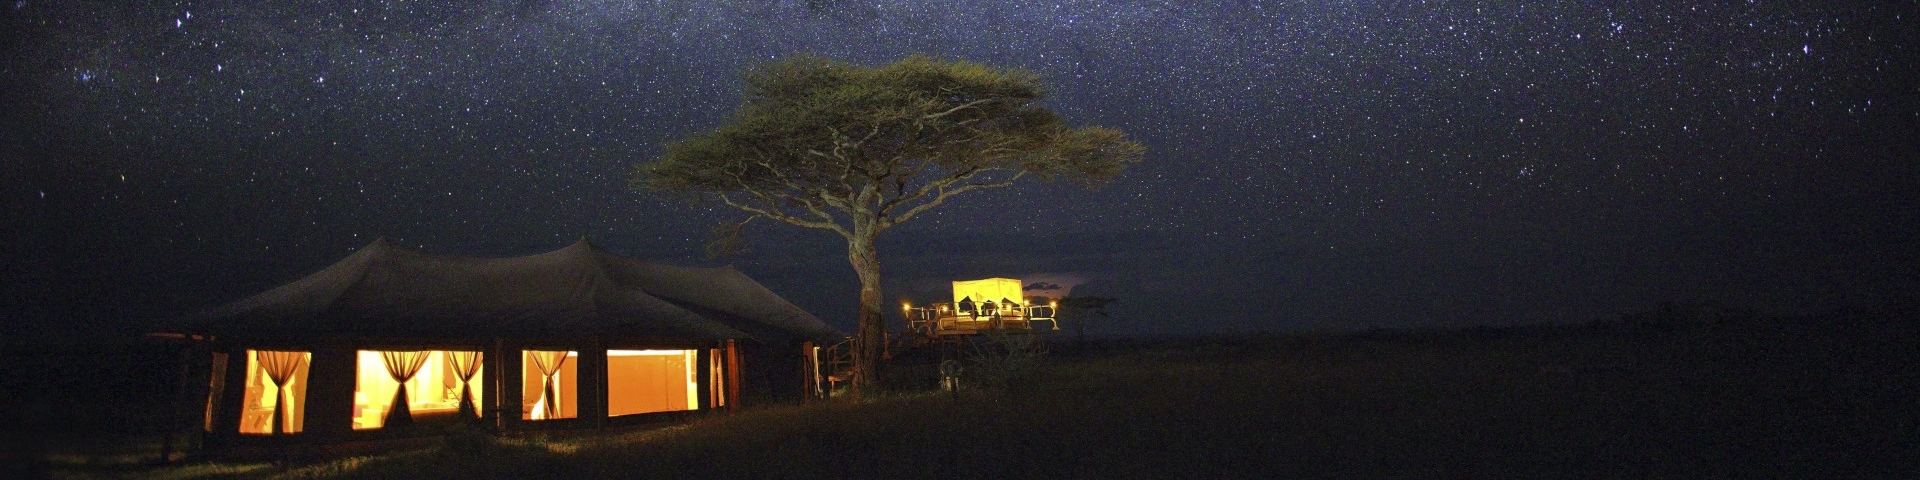 Ehlane Plains Camp Serengeti Tanzania Tented accommodation Banner